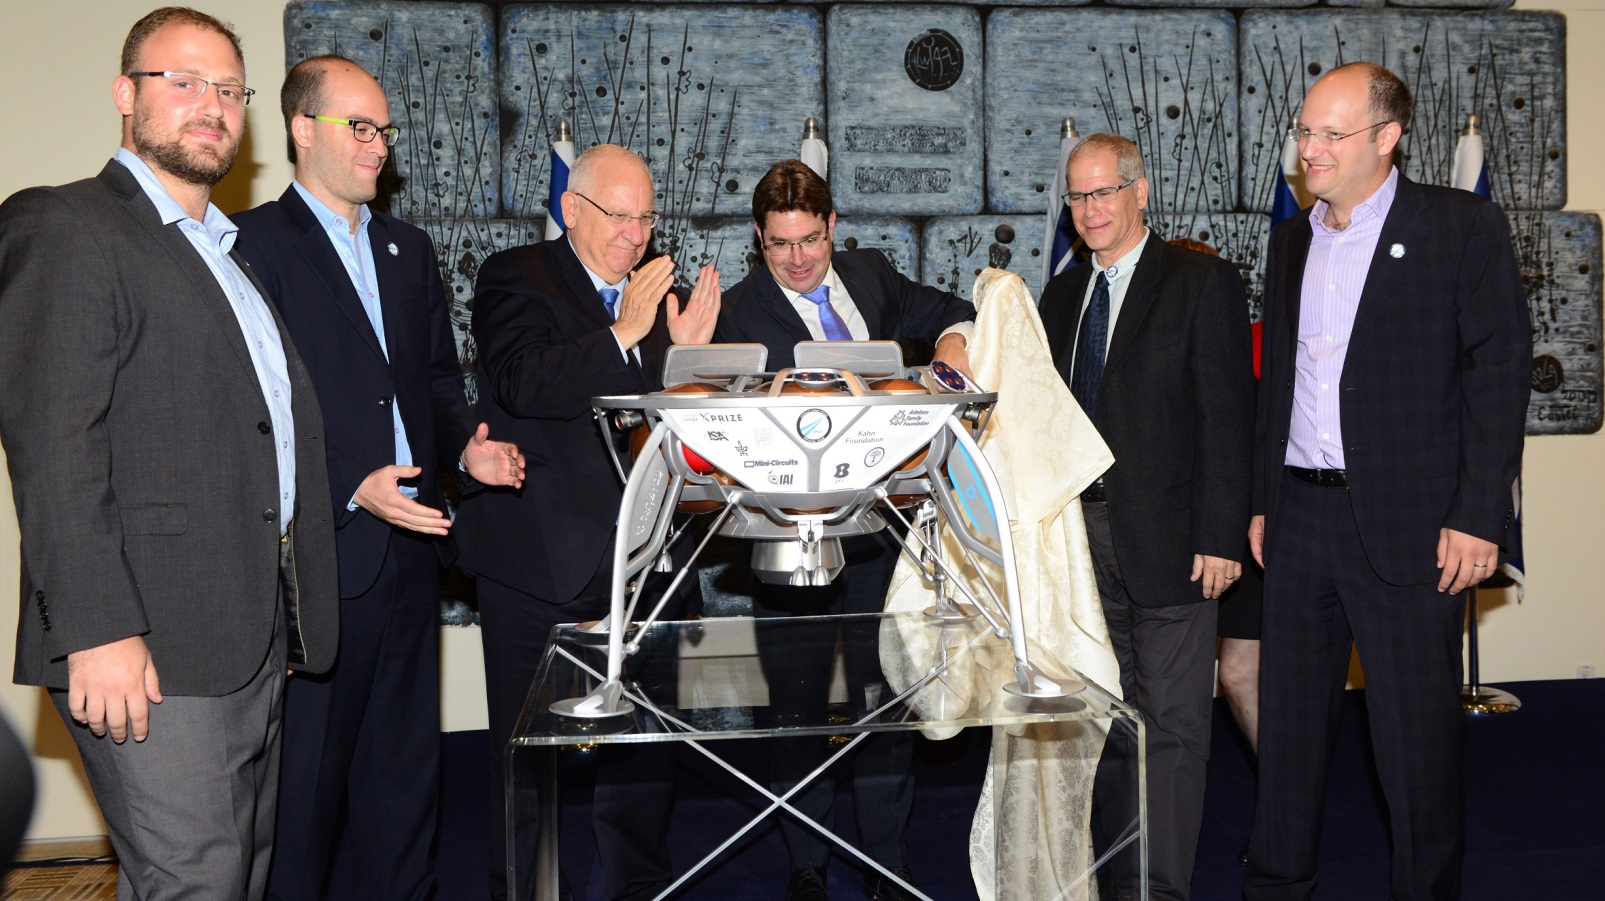 A prototype of SpaceIL's robotic spacecraft being unveiled for Israeli President Reuven Rivlin. Photo: courtesy